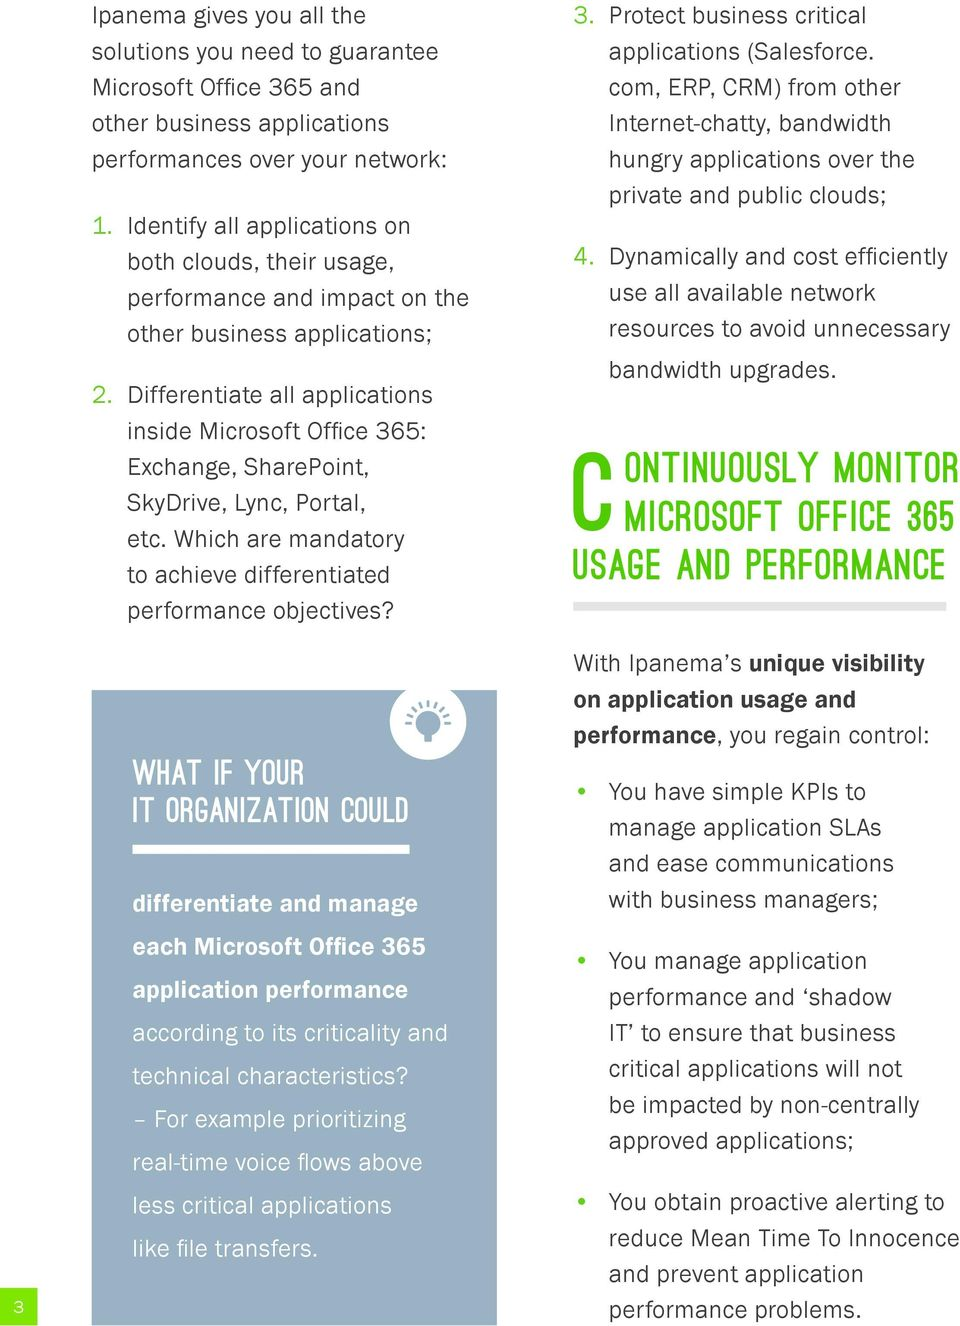 Differentiate all applications inside Microsoft Office 365: Exchange, SharePoint, SkyDrive, Lync, Portal, etc. Which are mandatory to achieve differentiated performance objectives?